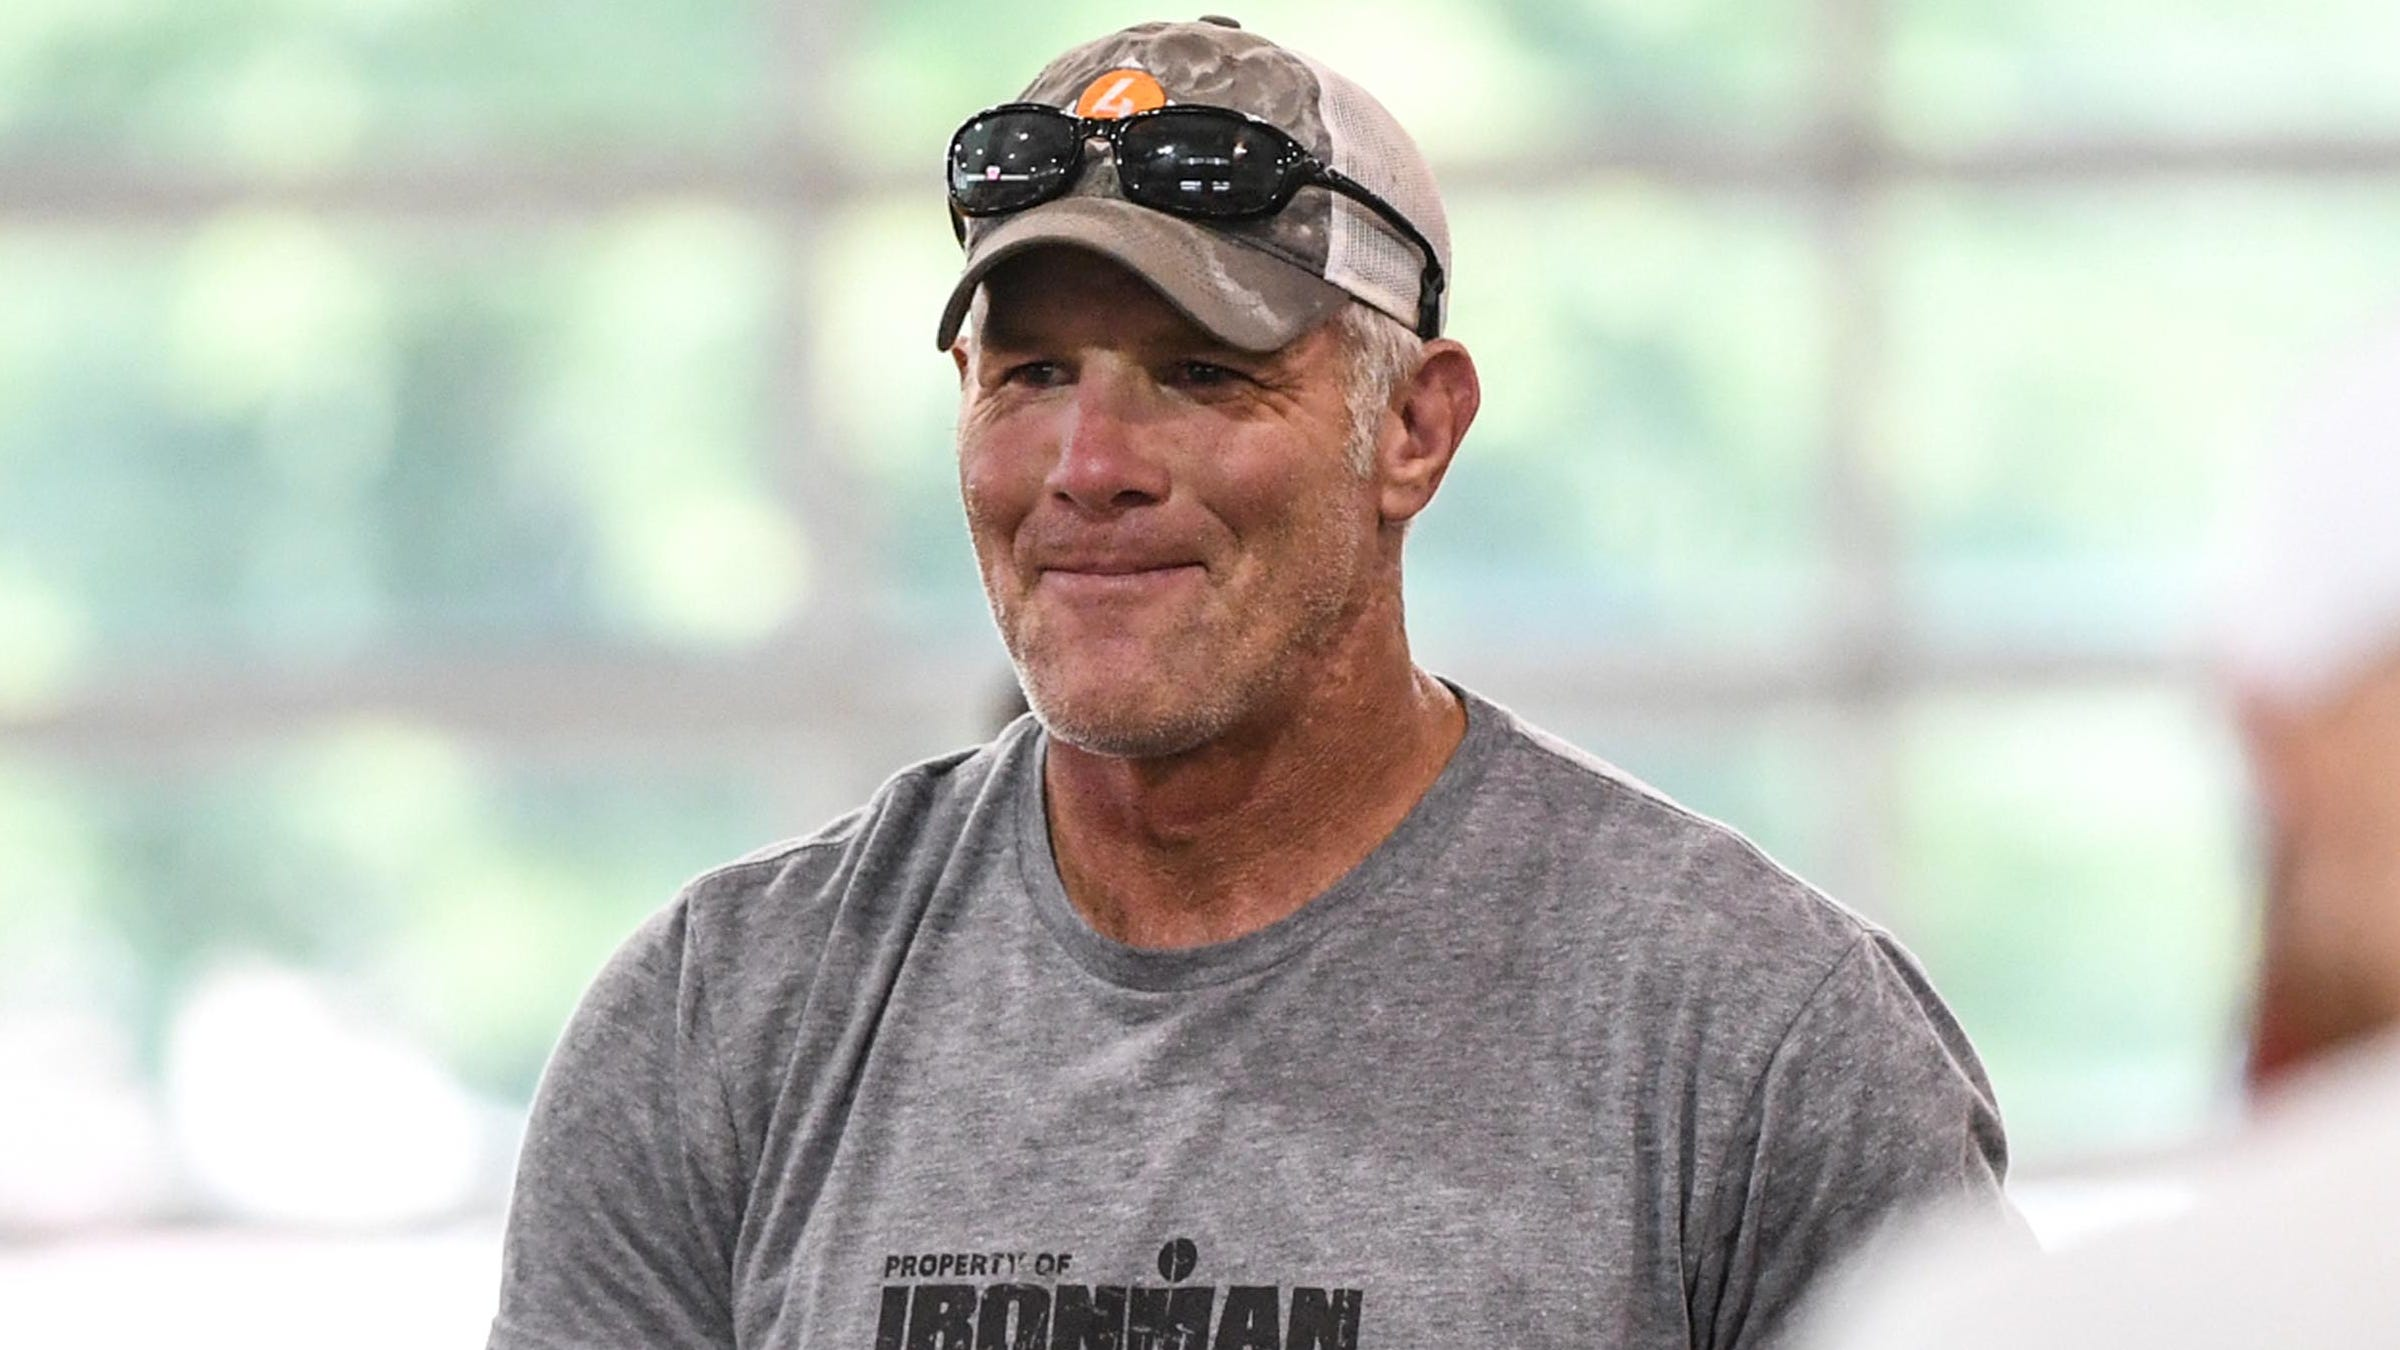 Brett Favre was inducted into the  Pro Football Hall of Fame in 2016.